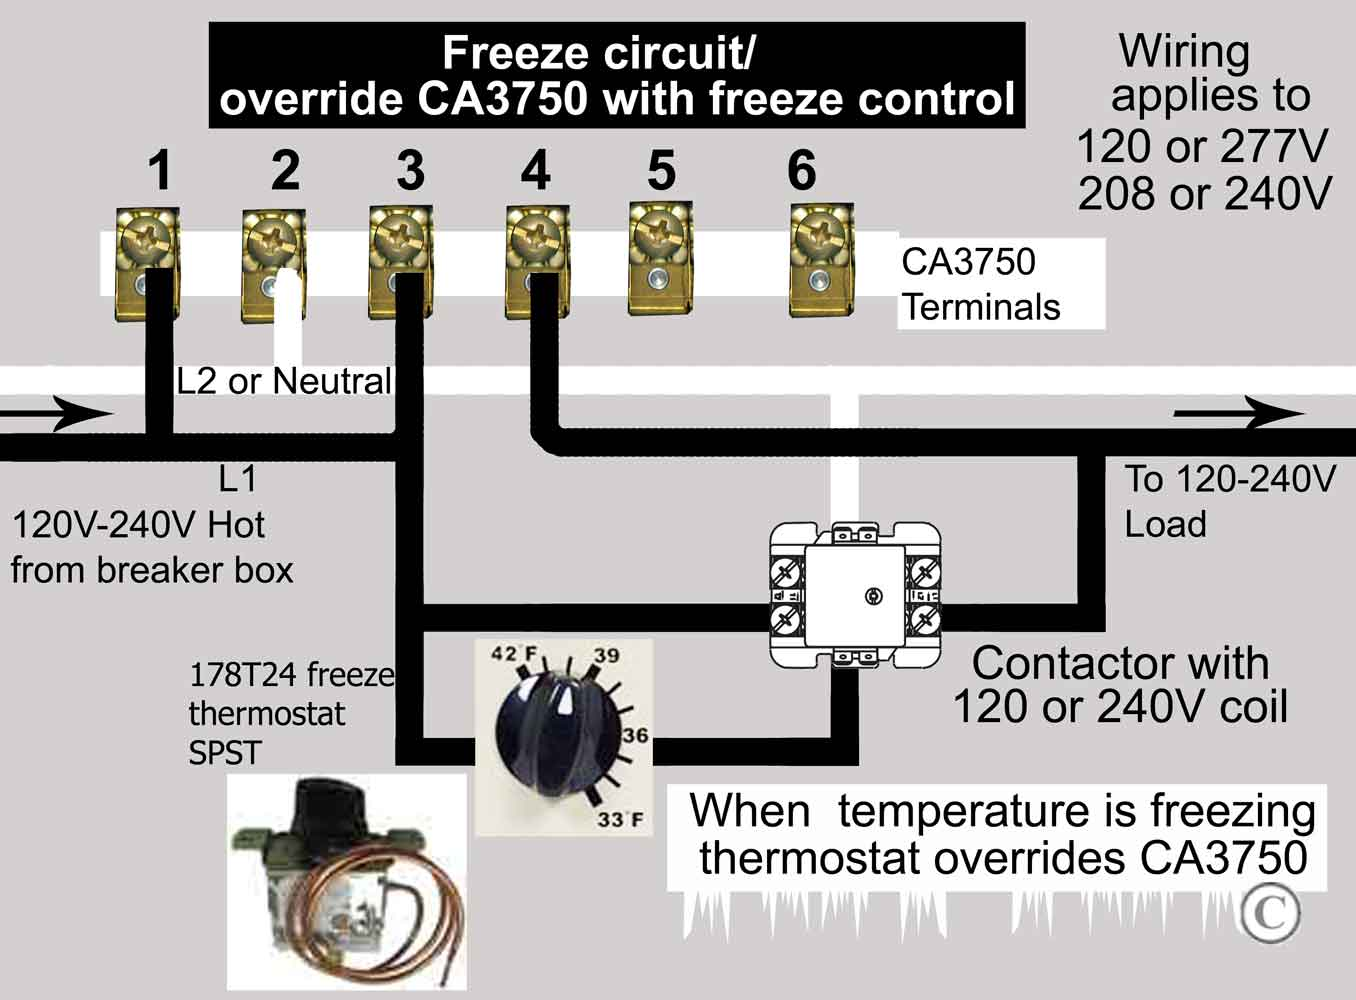 How To Wire Ca3750 Z Wave Contactor Zwave Basics Circuit Diagram Wiring A For 120volt Purchase With 120v Coil See